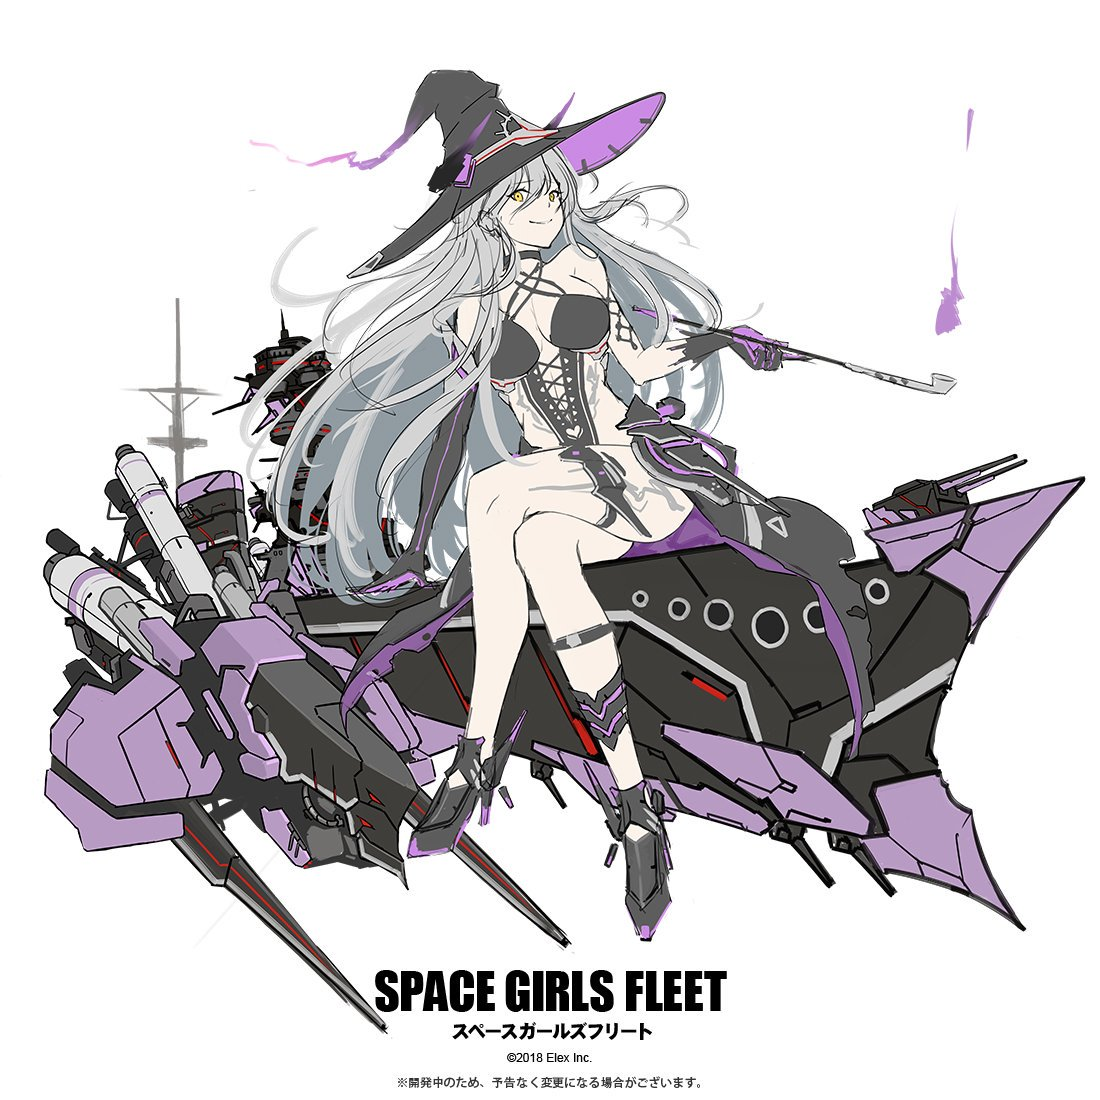 Space Girls Fleet art